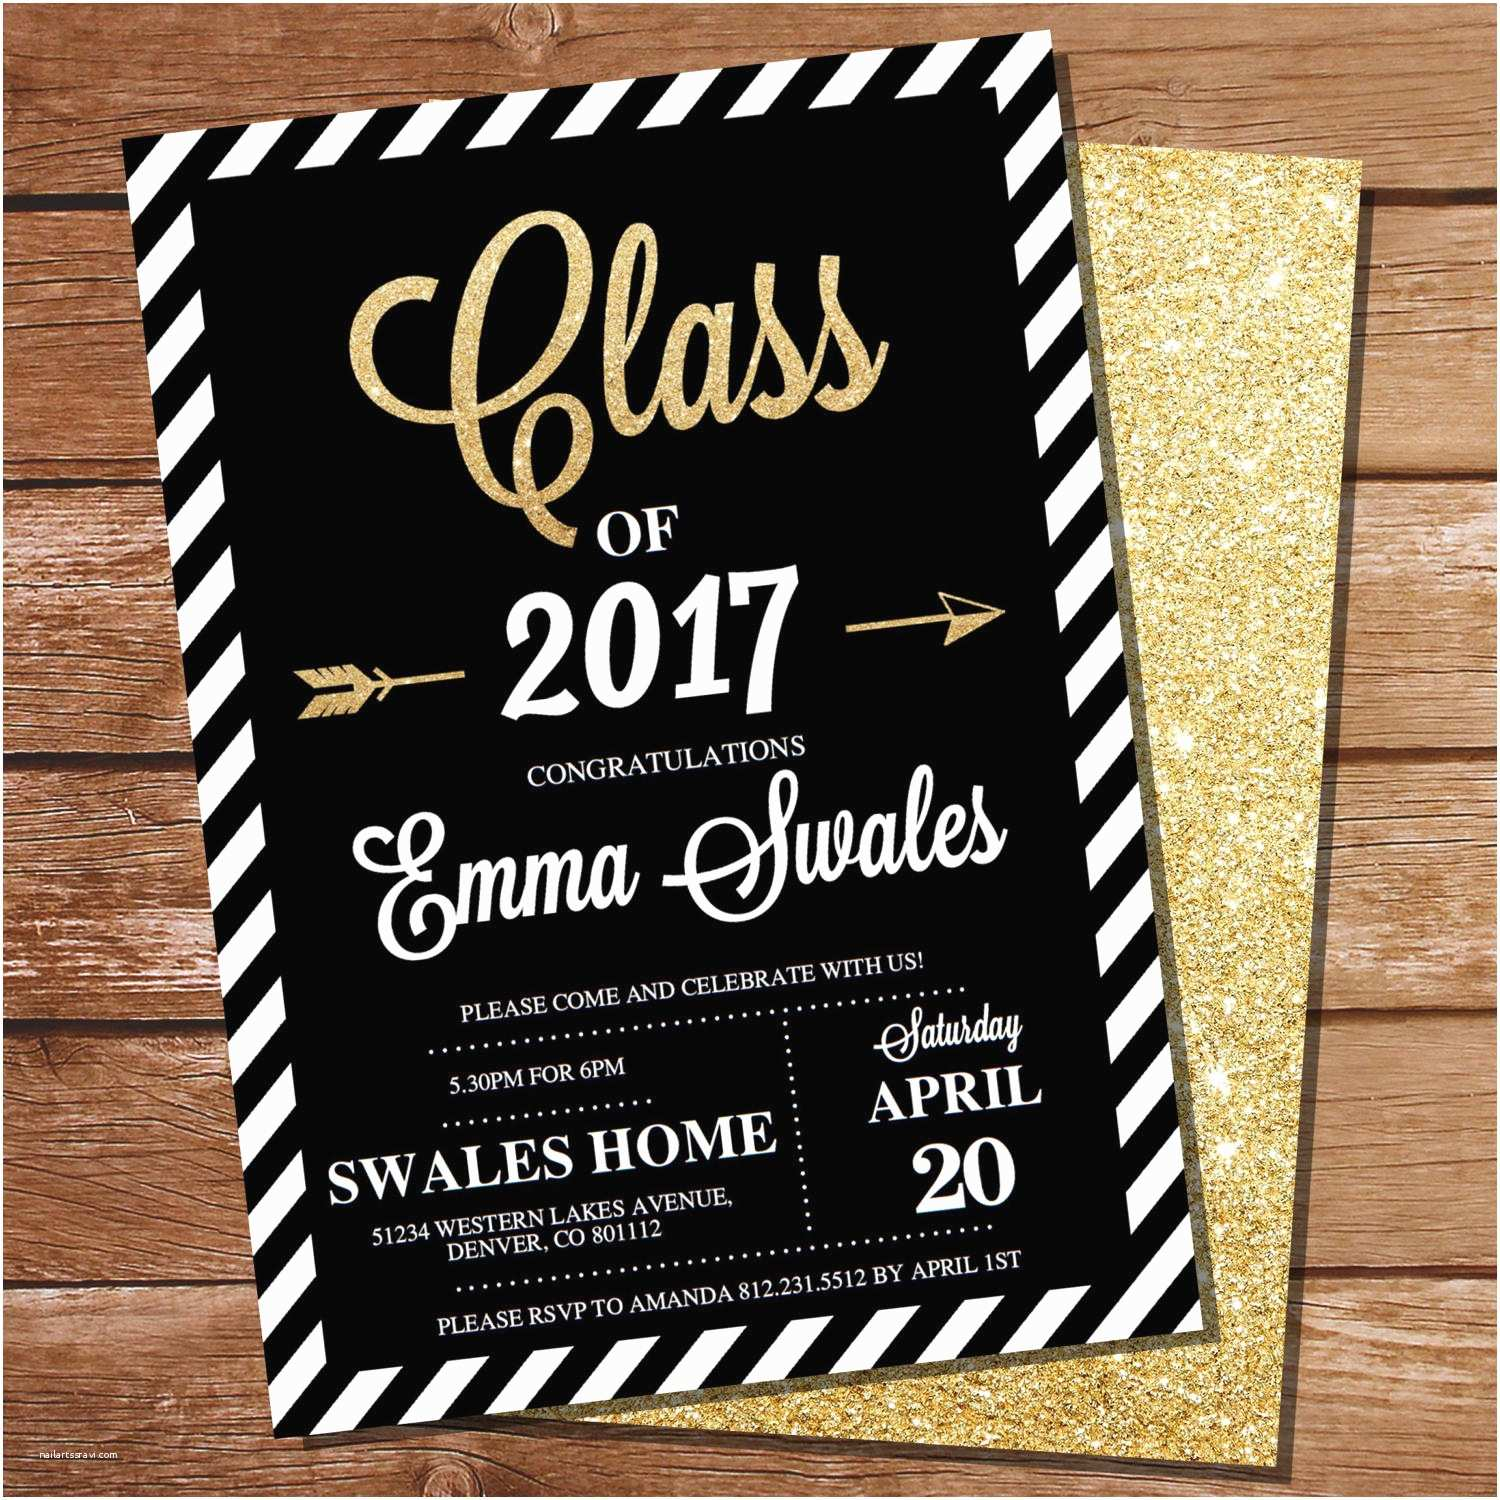 Graduation Party Invitations Graduation Invitation Black and Gold Graduation Invitation